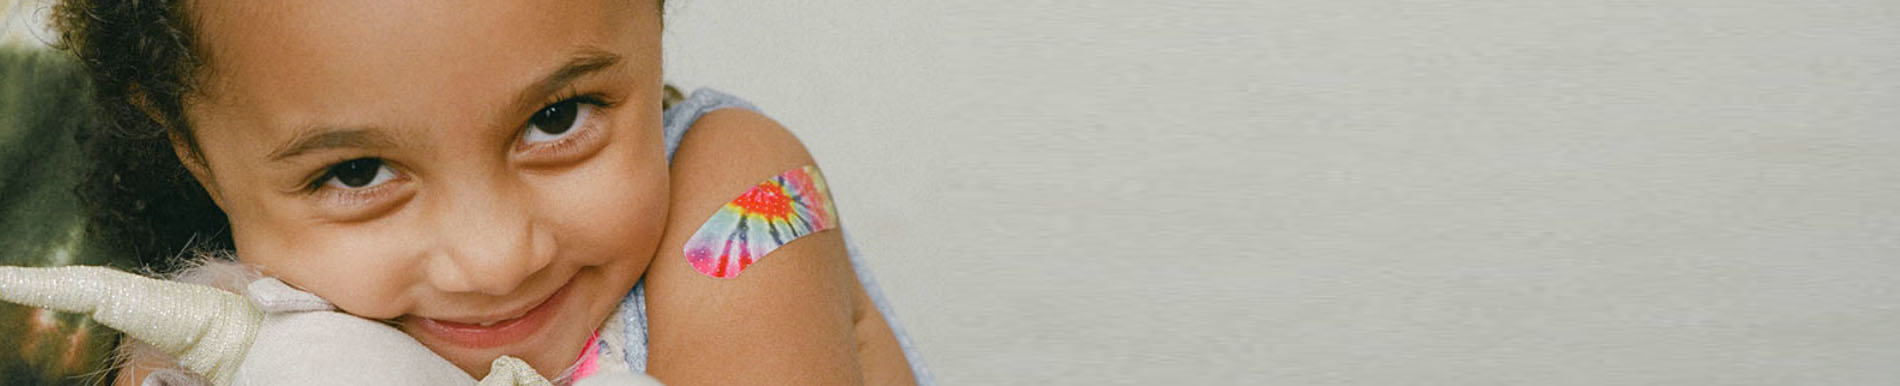 https://www.healthychildren.org/SiteCollectionImage-Homepage-Banners/Flu_Shot_Homepage.jpg